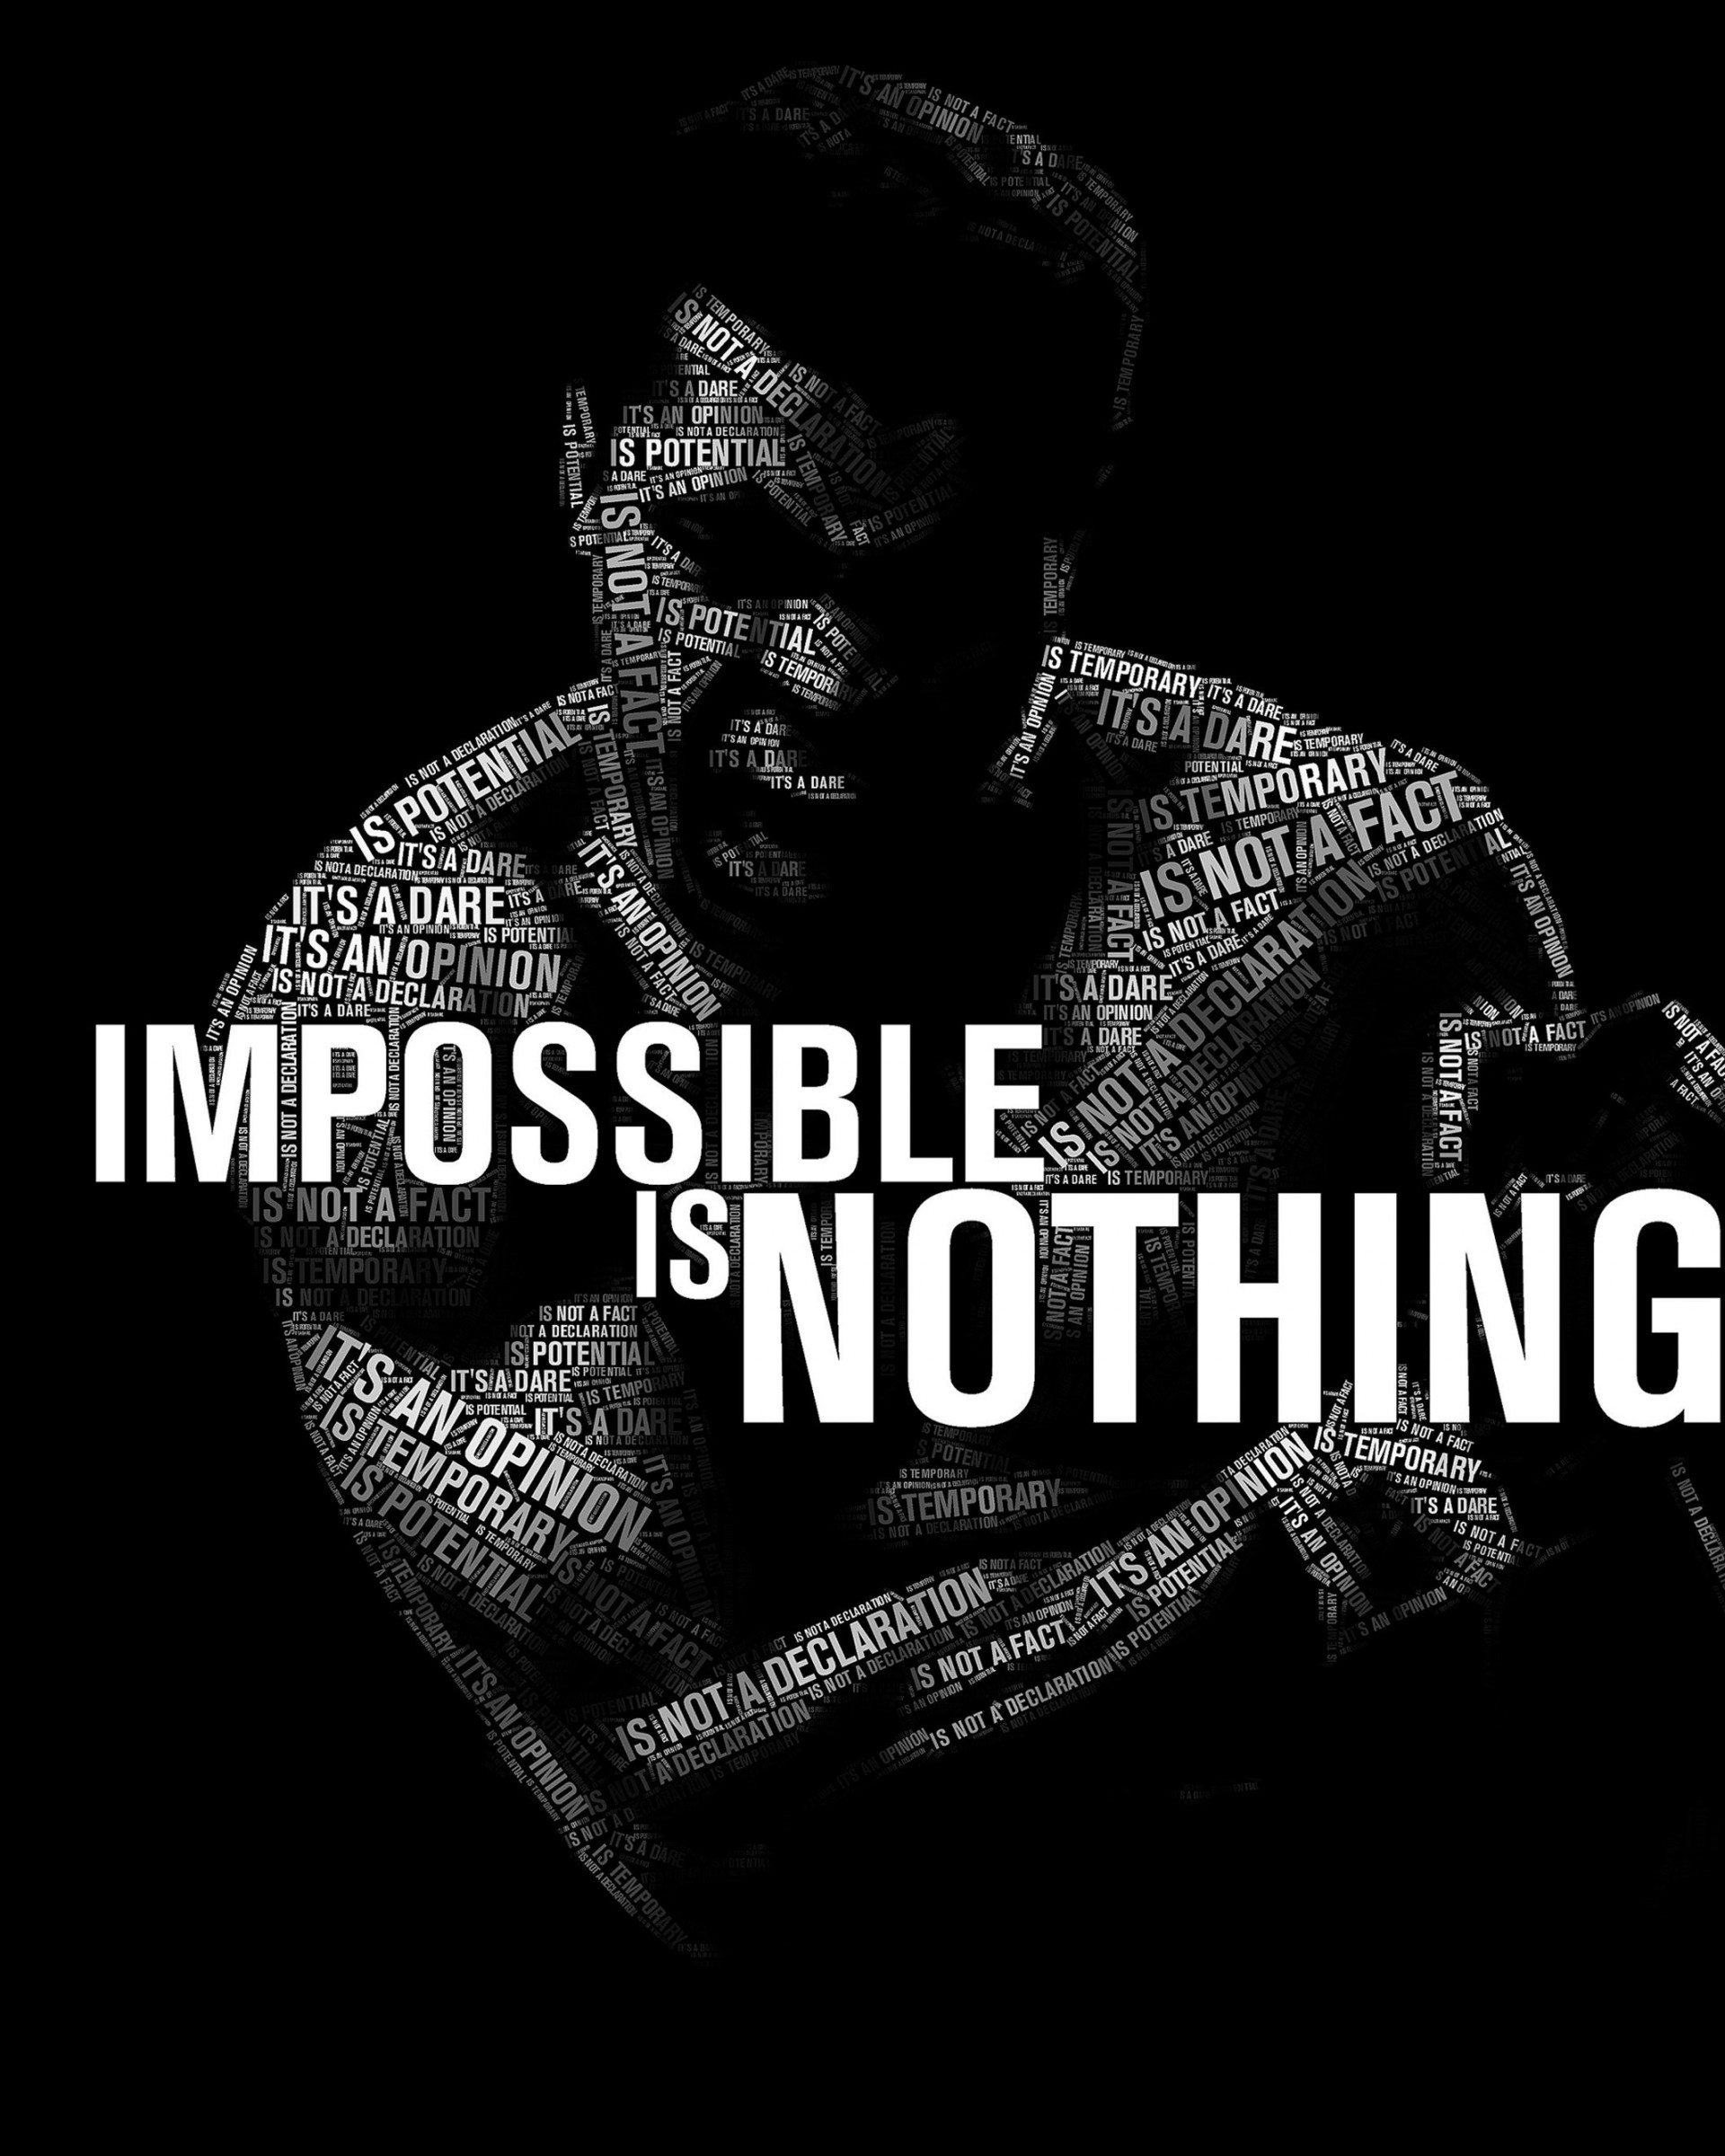 Impossible Is Nothing - Muhammad Ali Wallpaper for Google Nexus 7